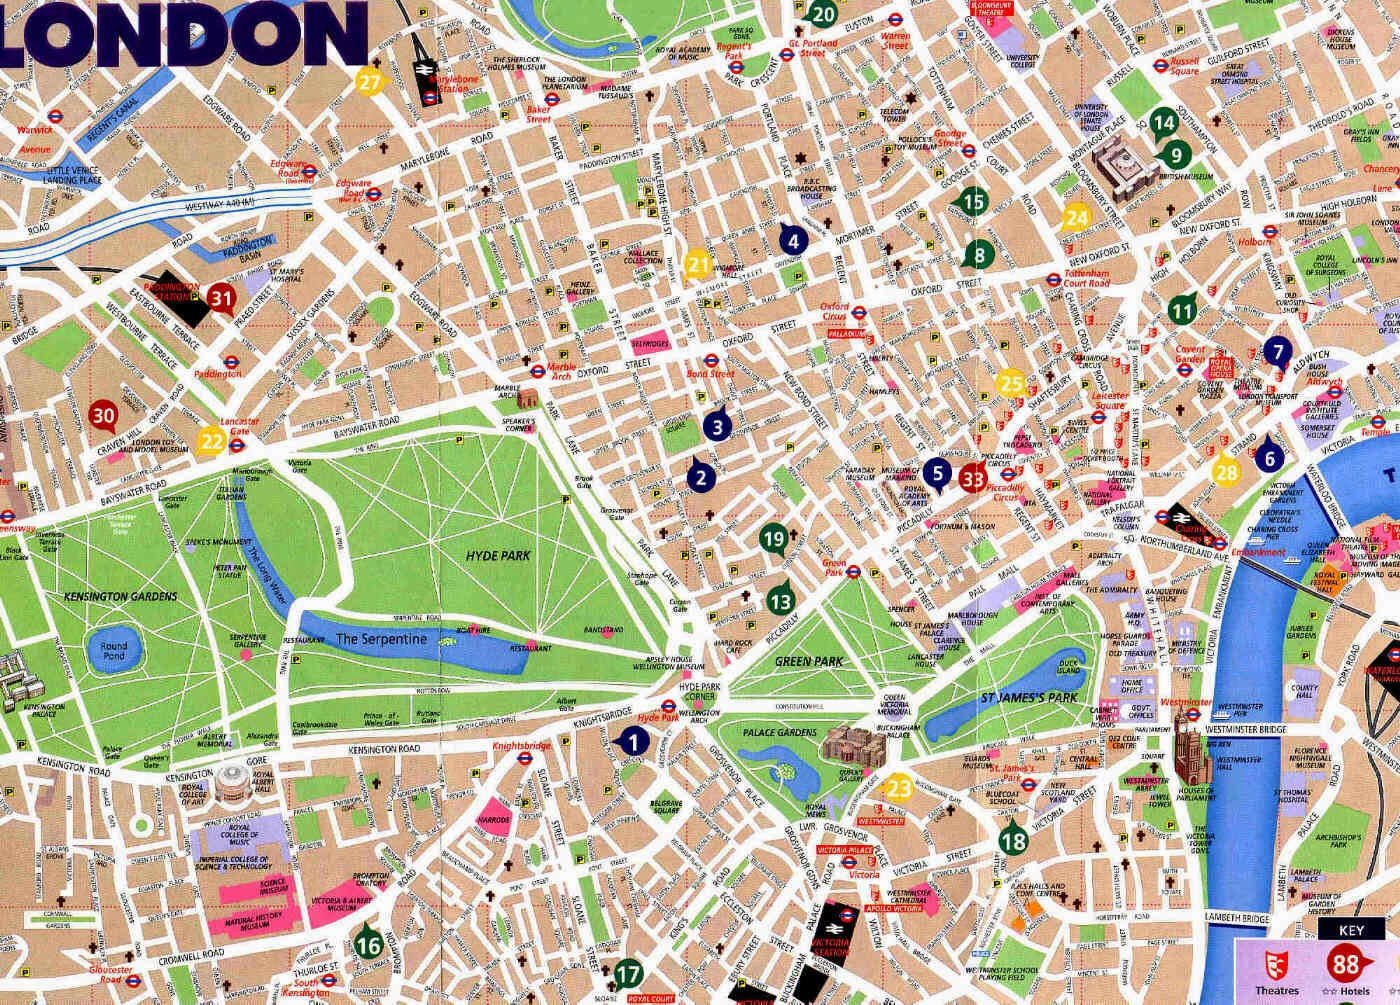 April 2015 Free Printable Maps – London Tourist Maps